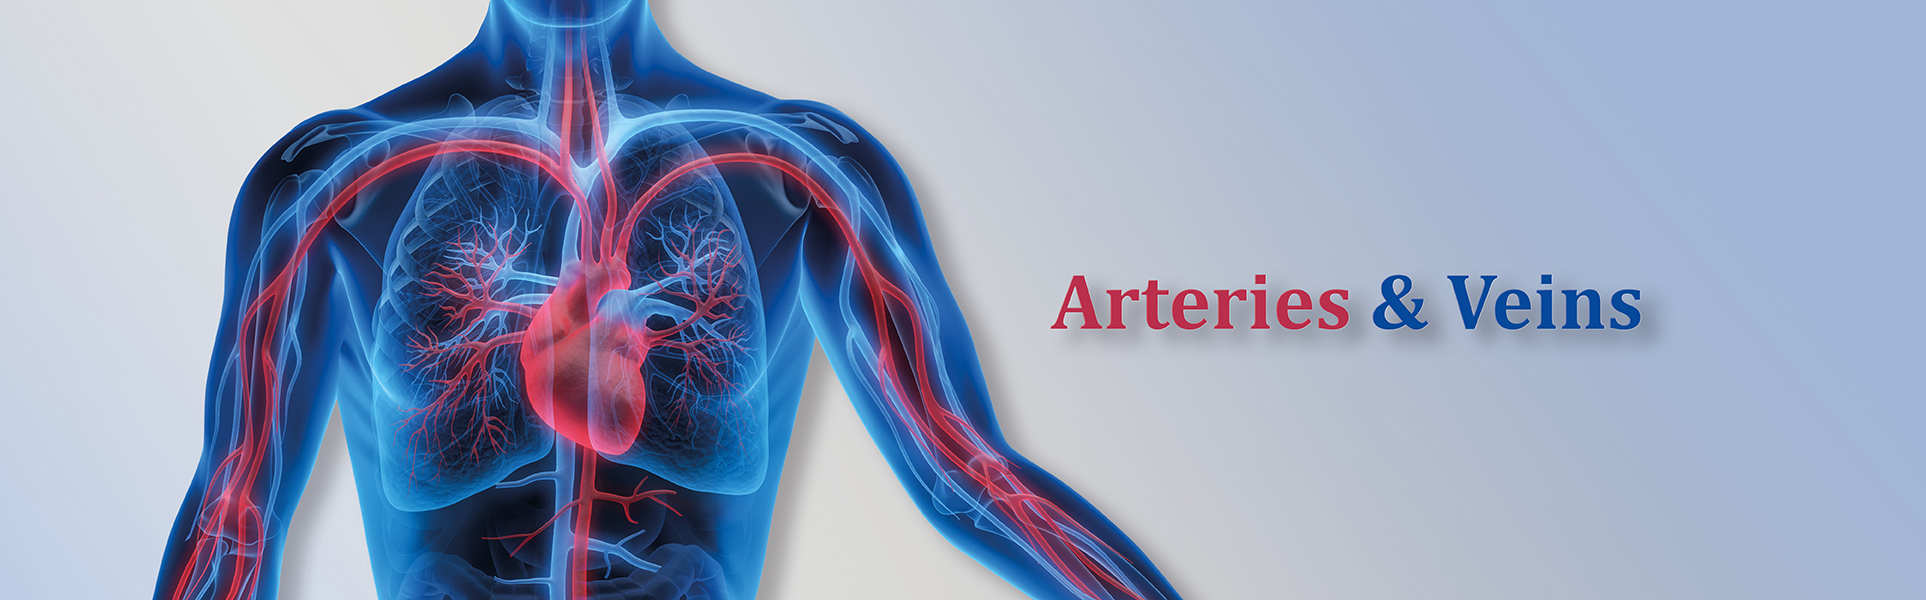 Header_Arteries_Veins_Arterial_Venous_diseases_ Arteriosclerosis_aneurysms_embolism_thrombosis_spider_veins,_varicose_veins_variceal_leg_ulcers